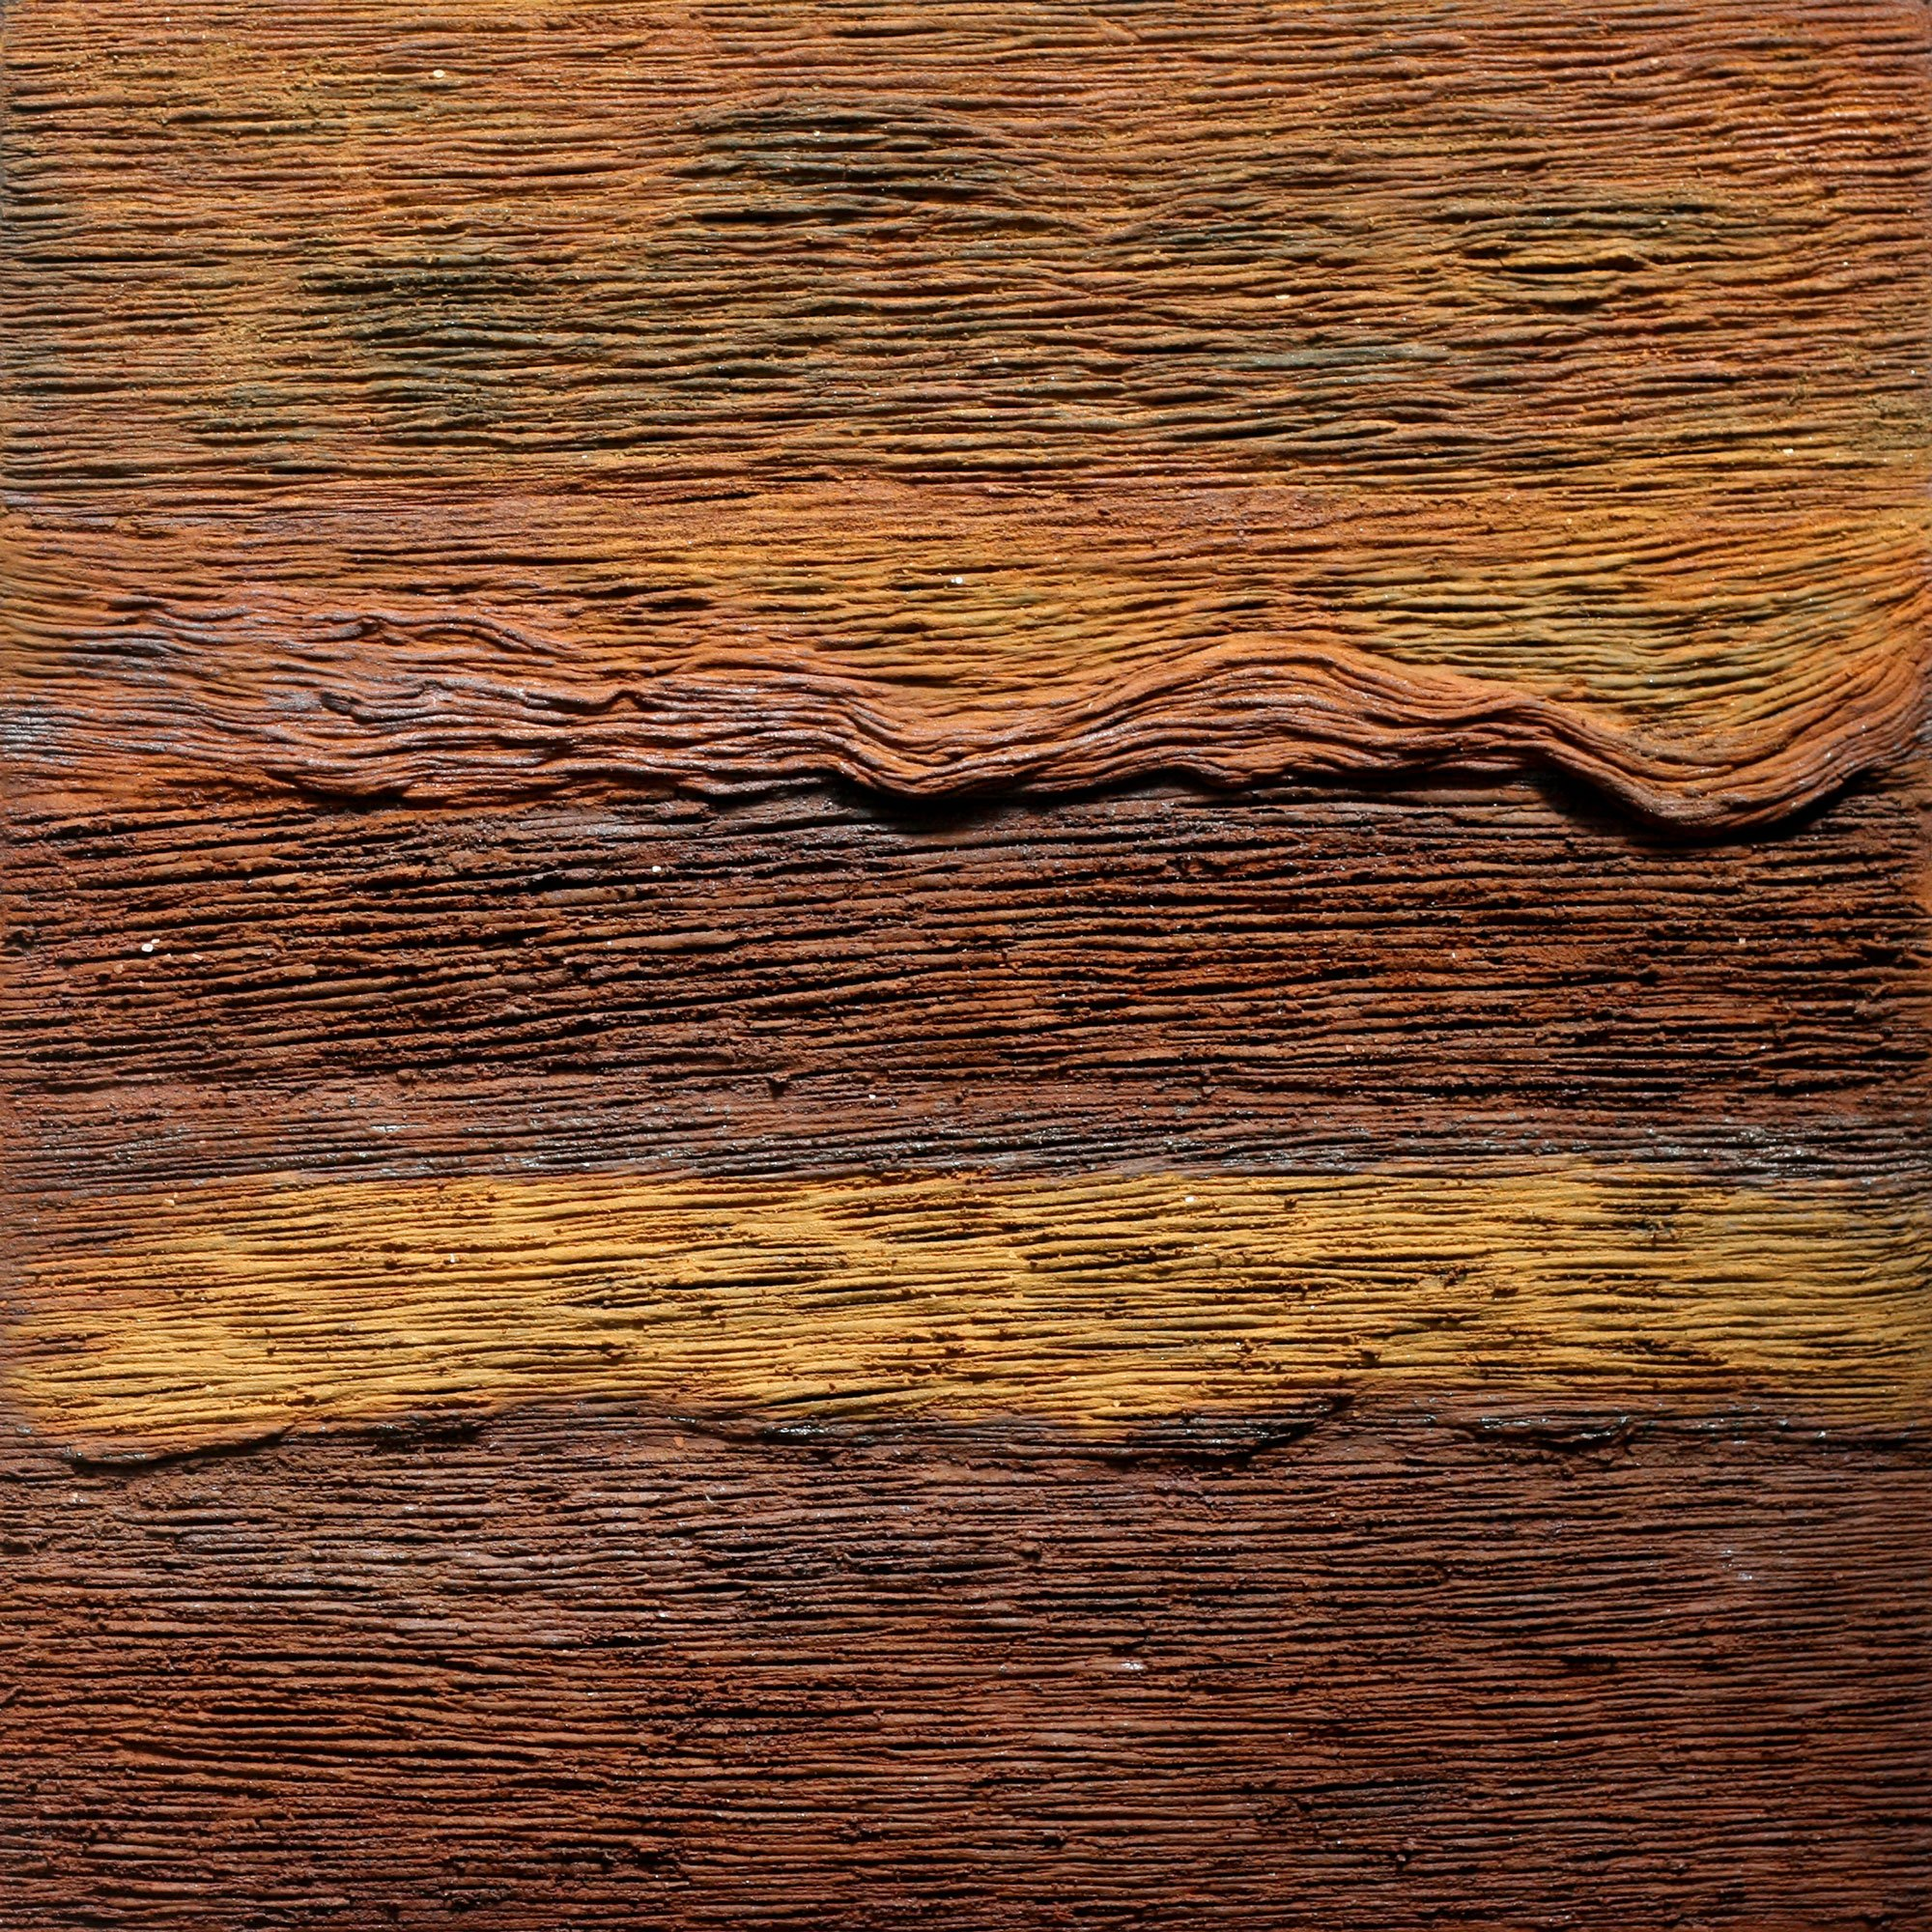 Rustic Paint Texture And Materials Blend In Sabine Portela